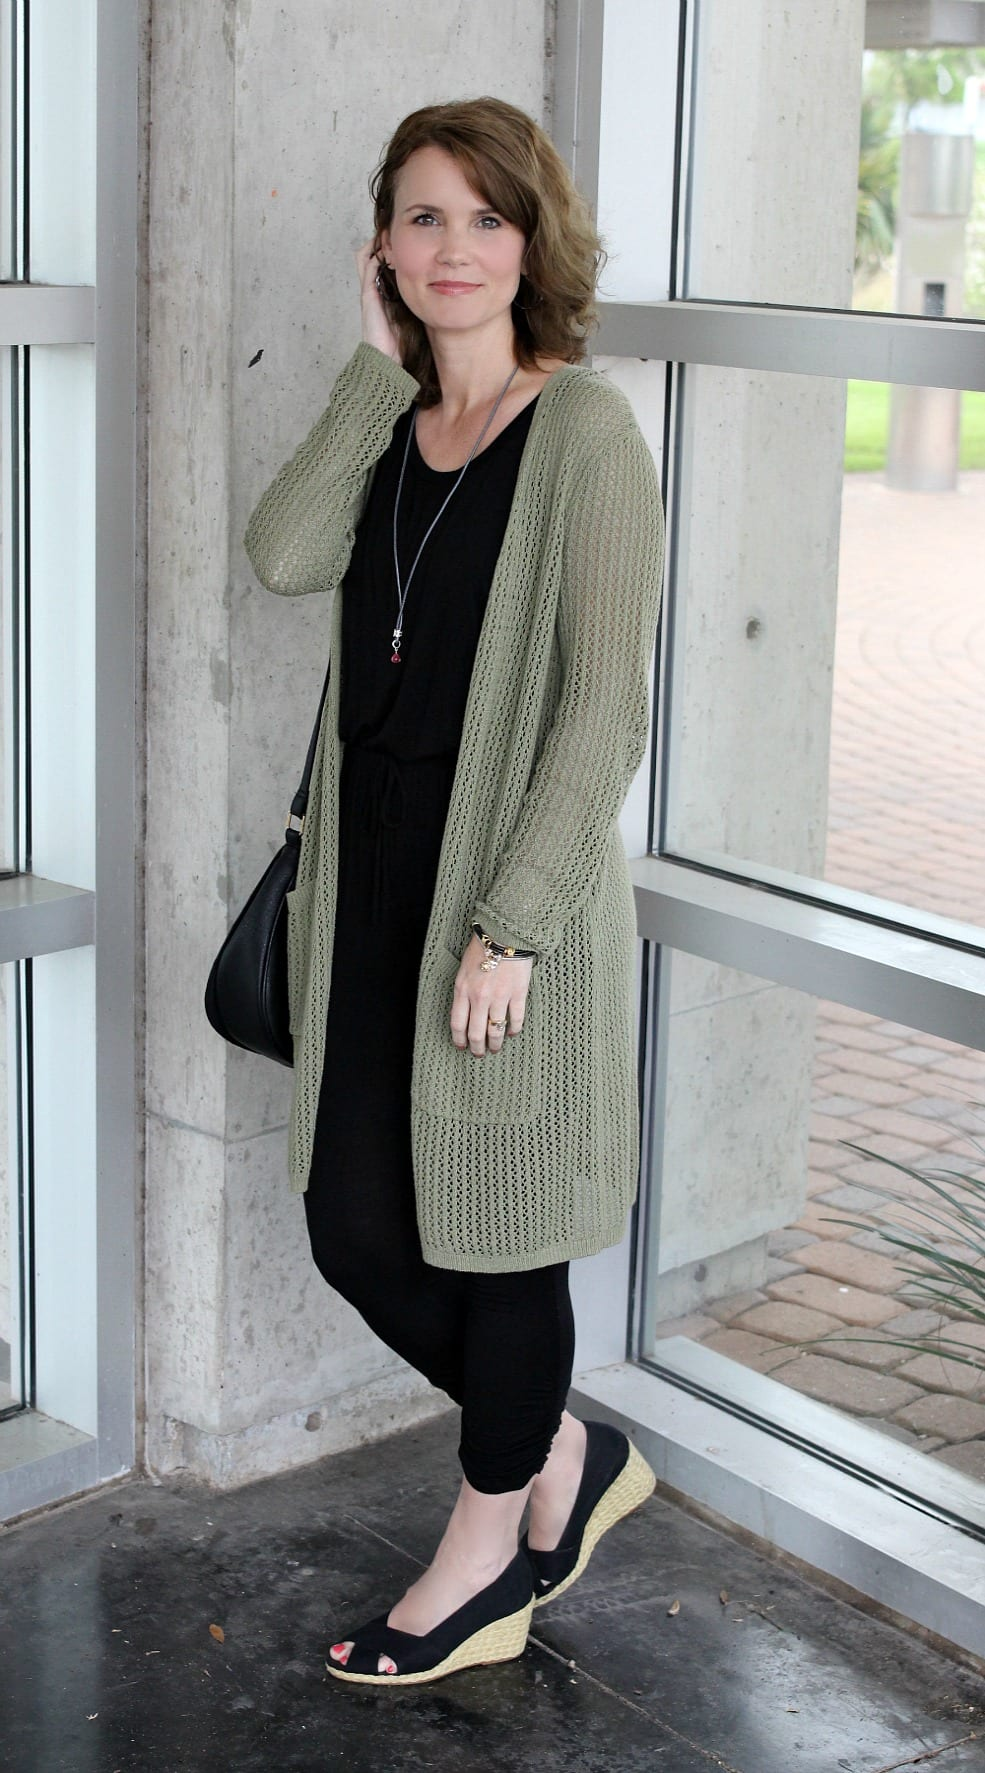 Casual outfit idea - black jumpsuit, long cardigan, wedges and jewelry. Jewelry is from Endless Jewelry.